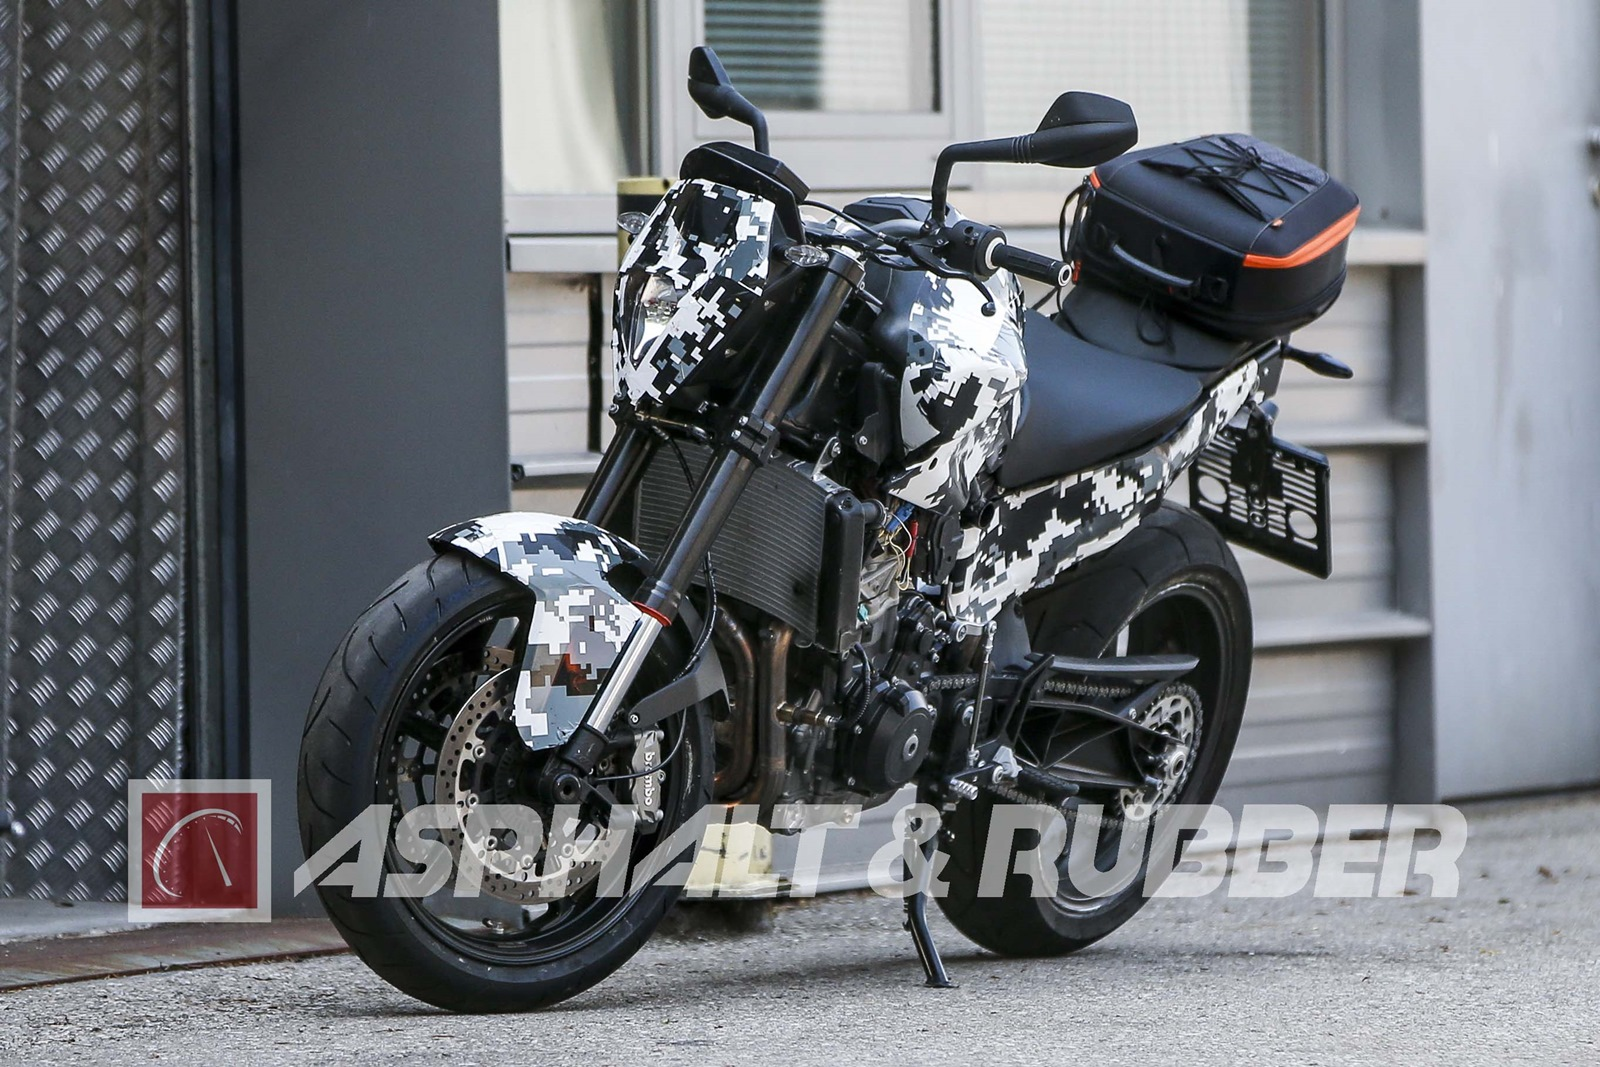 New KTM Duke 800 front view